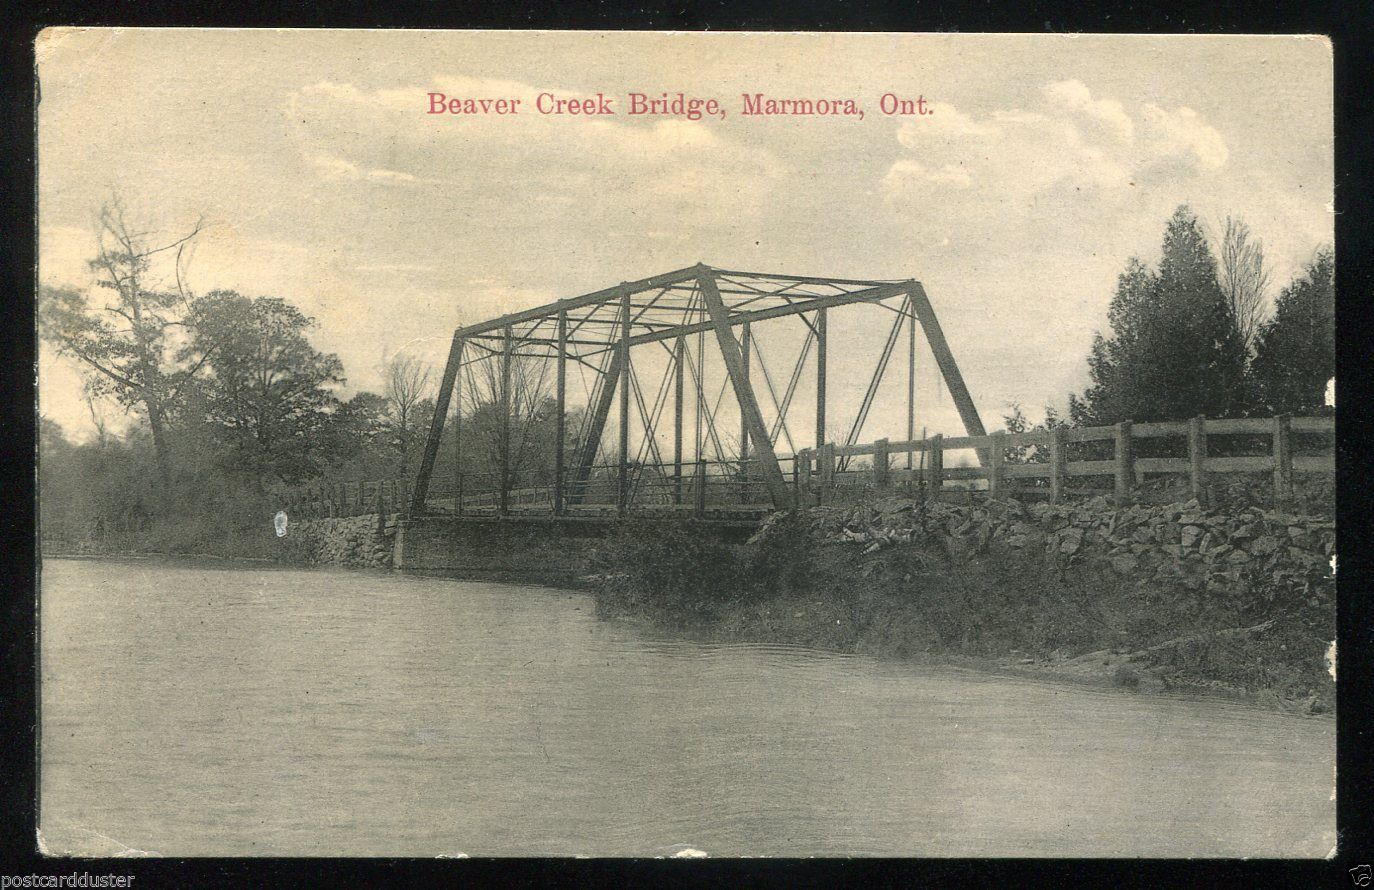 OLD BRIDGE ON RIVERVIEWCRES. DRIVE (NOW REMOVED)